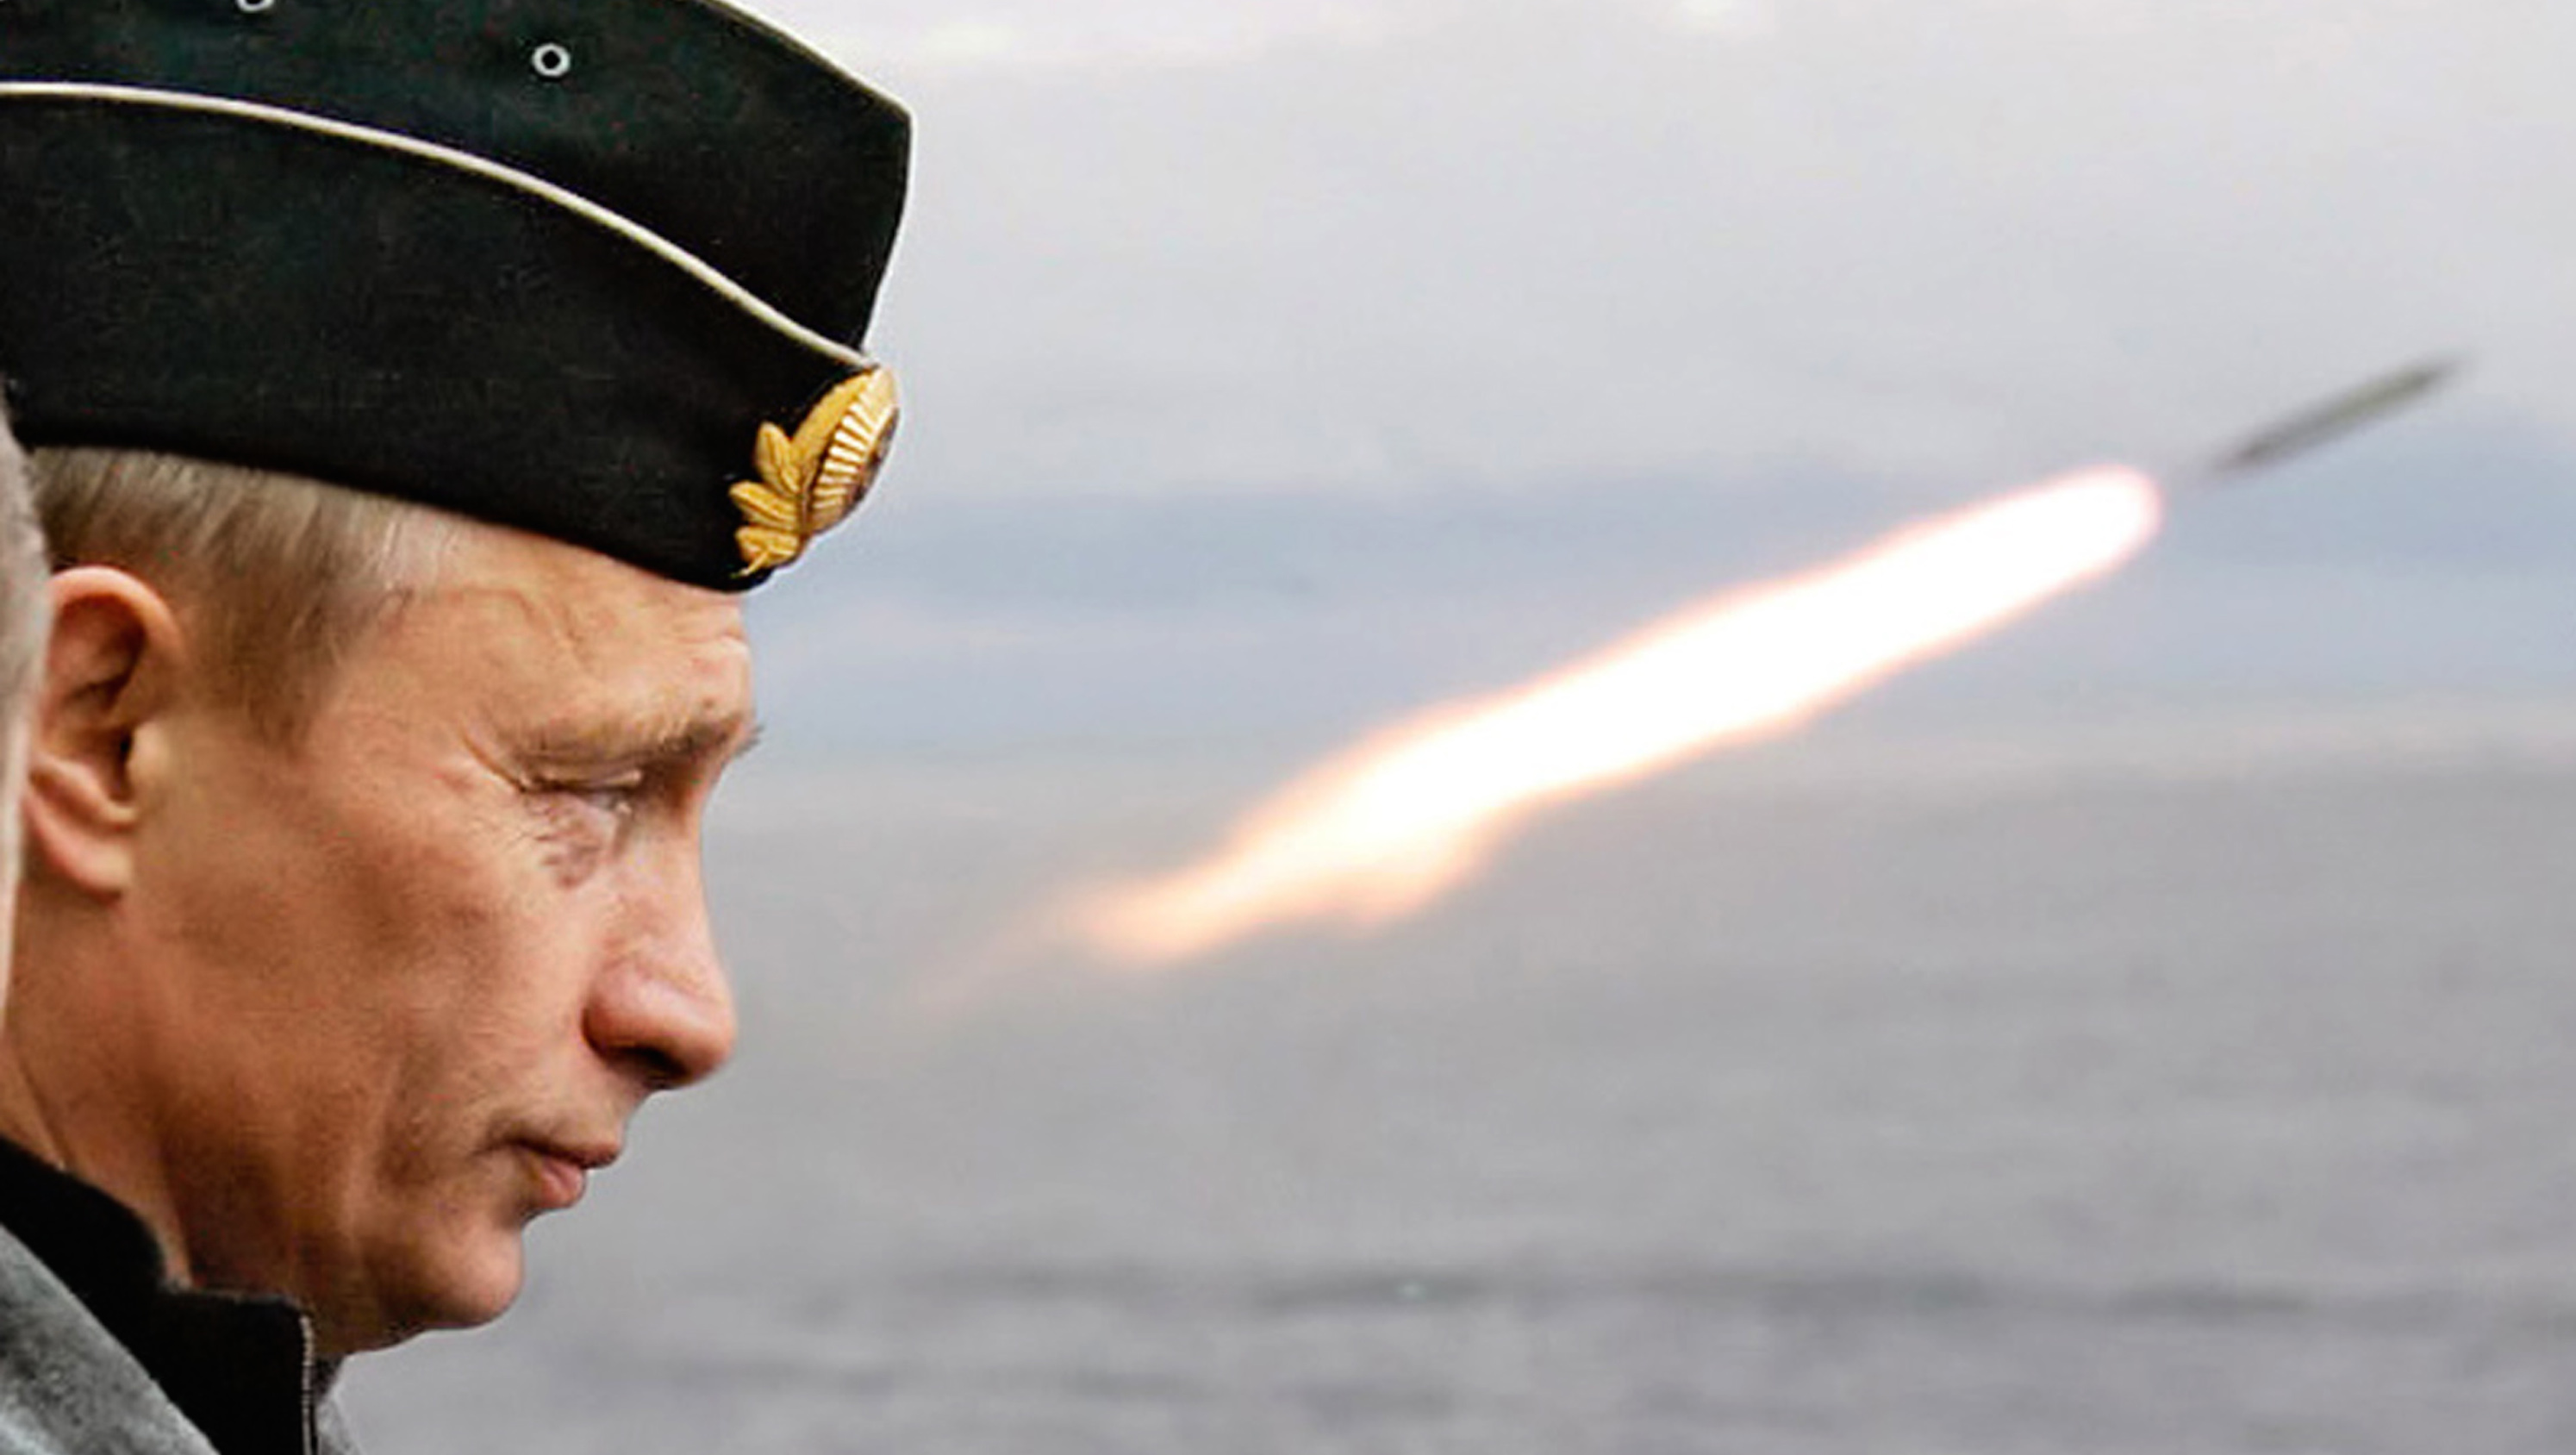 Russian President Putin watches the launch of a missile during naval exercises in Russia's Arctic North on board the nuclear missile cruiser Pyotr Veliky.  Russian President Vladimir Putin watches the launch of a missile during naval exercises in Russia's Arctic North on board the nuclear missile cruiser Pyotr Veliky (Peter the Great), August 17, 2005. Russia's President Vladimir Putin oversaw the launch at sea of a ballistic missile on Wednesday, salvaging some honour after the embarrassment of two failed launches on a visit to the fleet last year. Others are unidentified. REUTERS/ITAR-TASS/PRESIDENTIAL PRESS SERVICE Pictures of the Month August 2005 - RTR15M1H